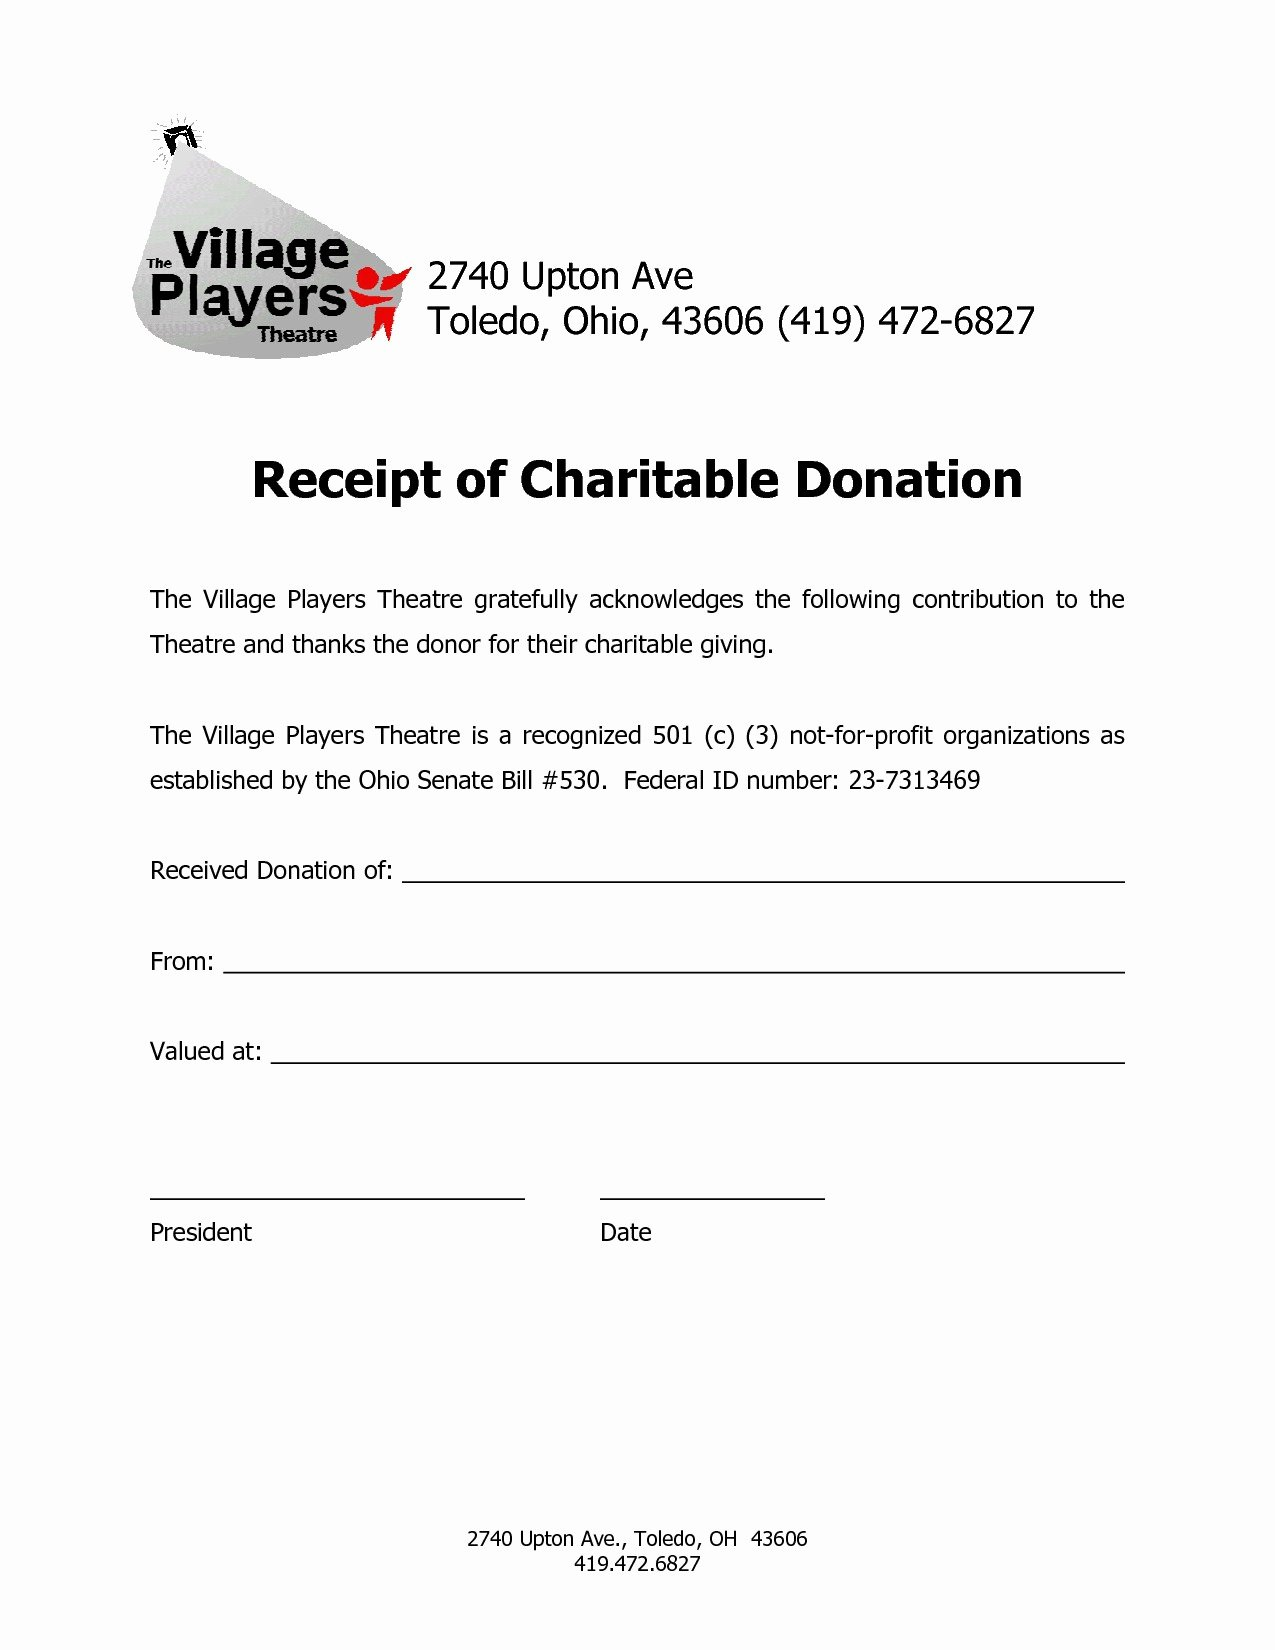 Donation Receipt Letter Templates Awesome Non Profit Tax Deduction Letter Template Sample